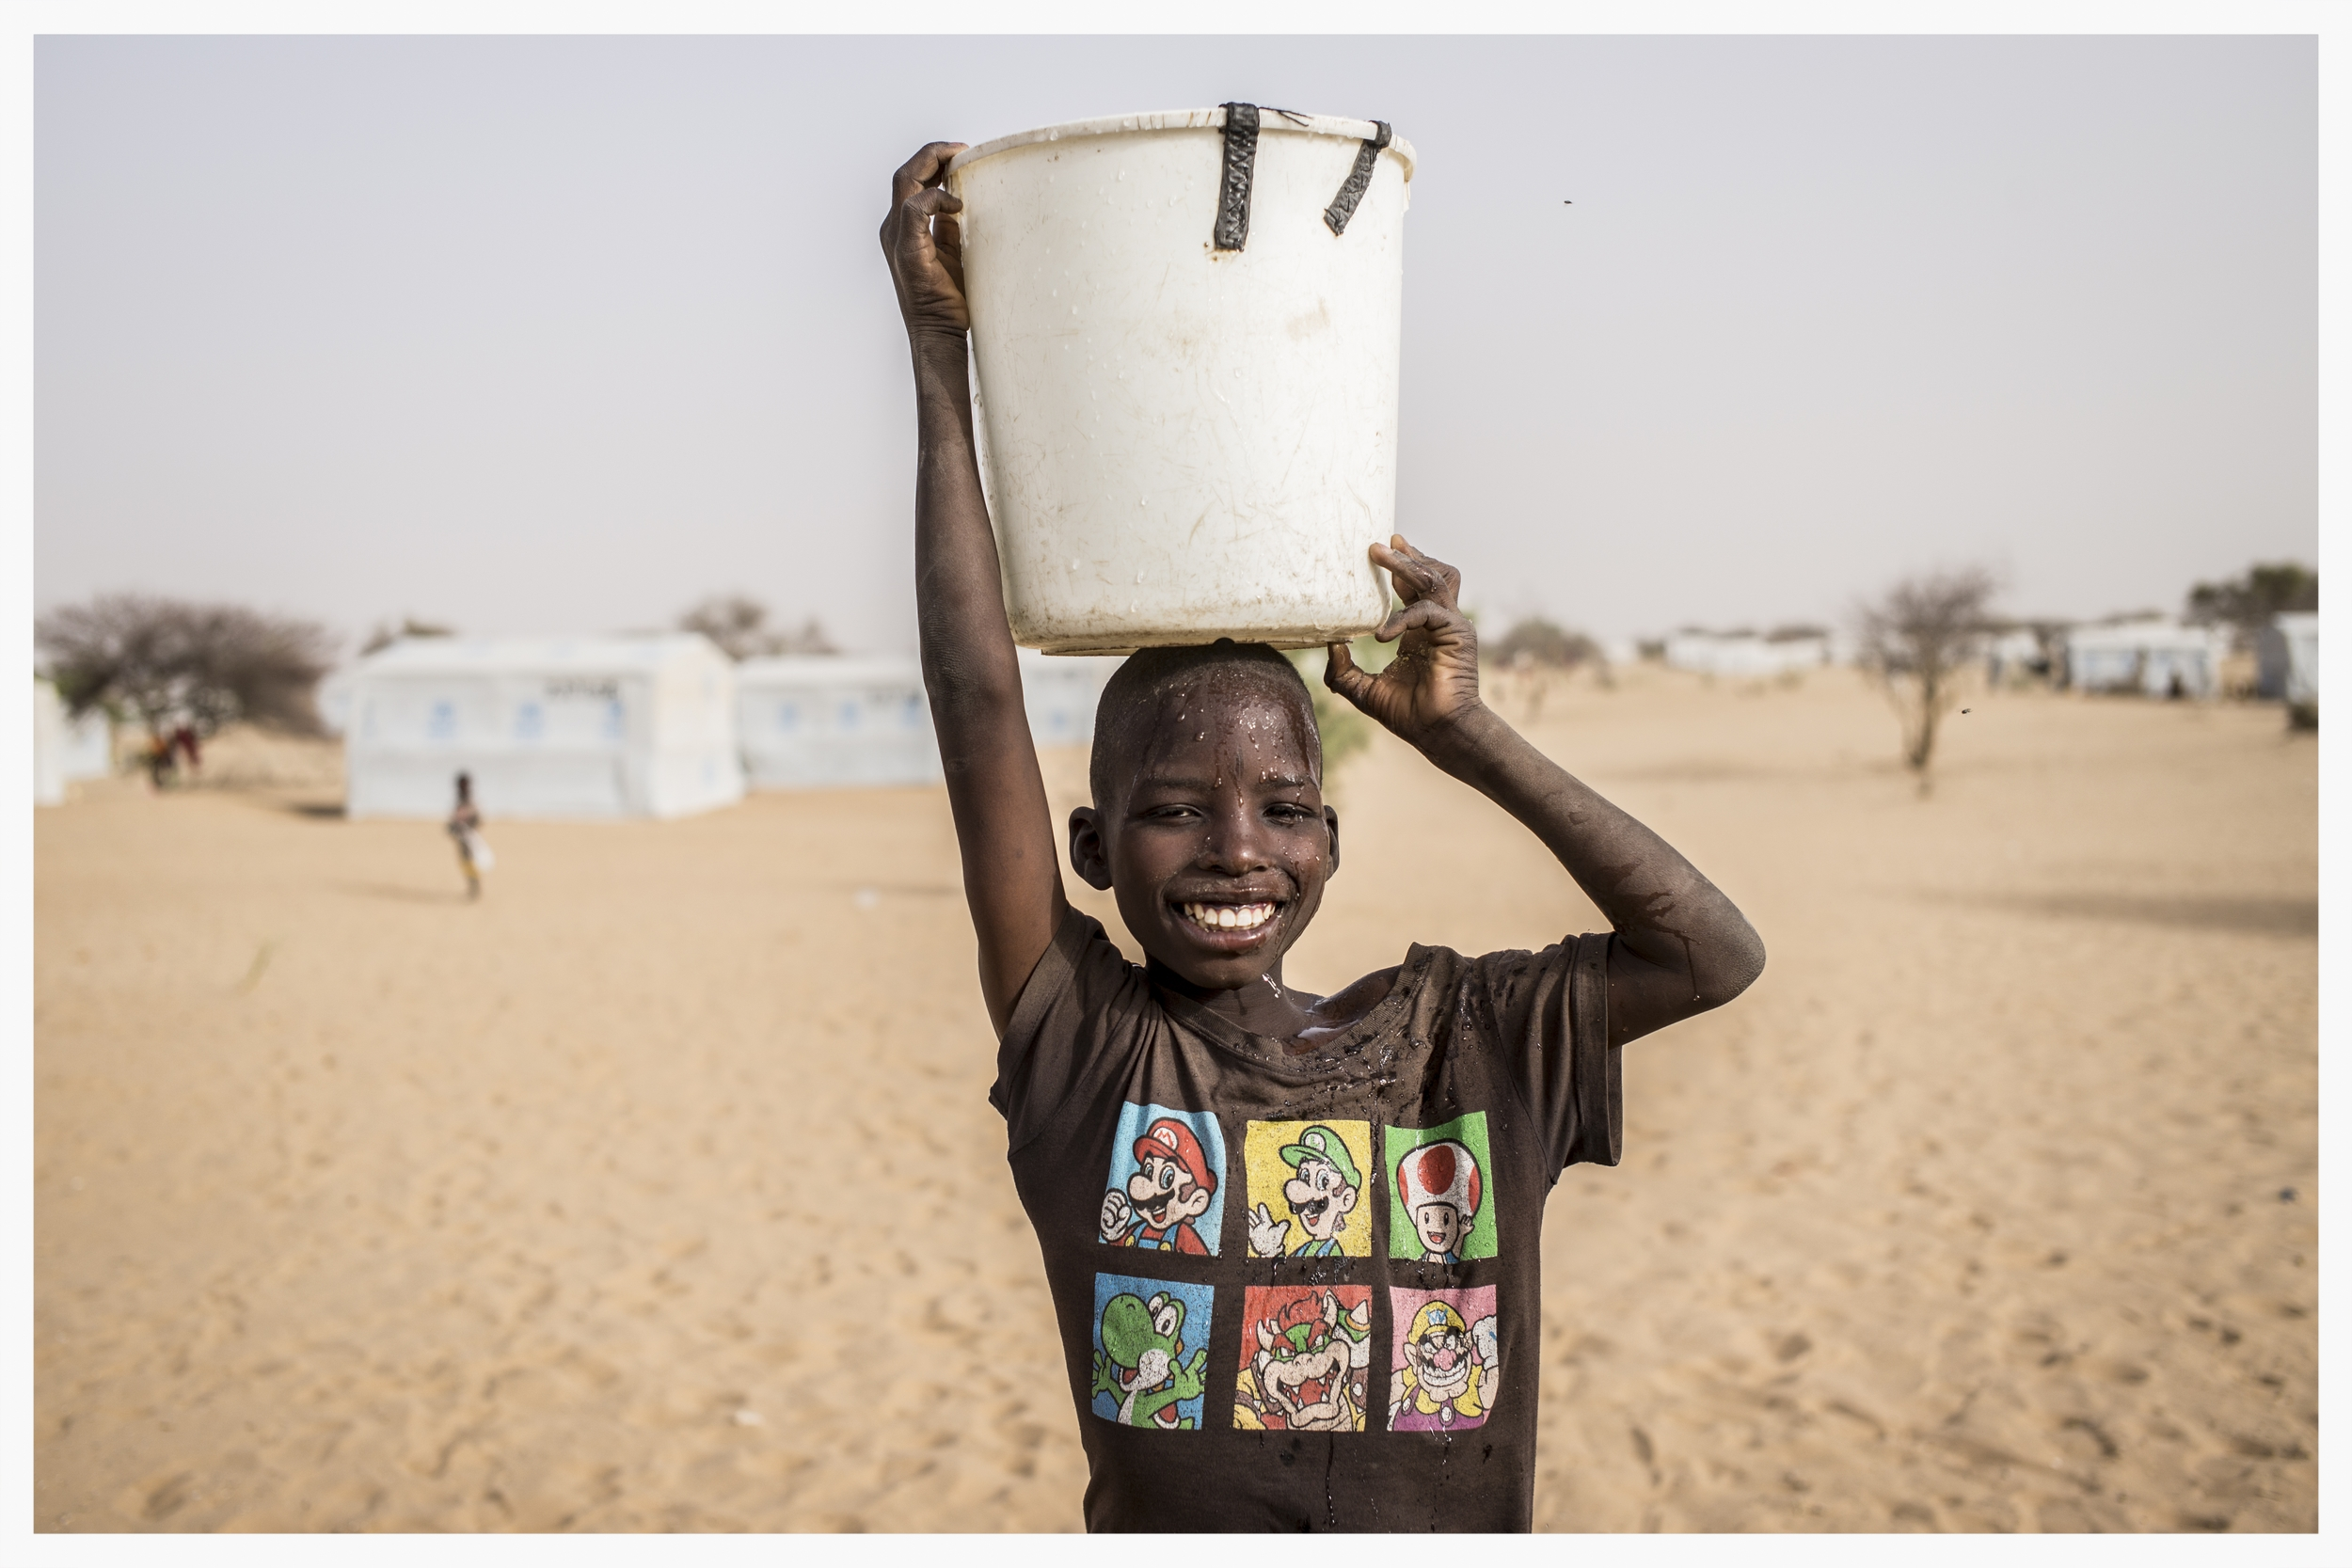 Clean water, basic toilets and good hygiene practices are essential for the survival and development of children. Without these basic needs, the lives of millions of children are at risk.